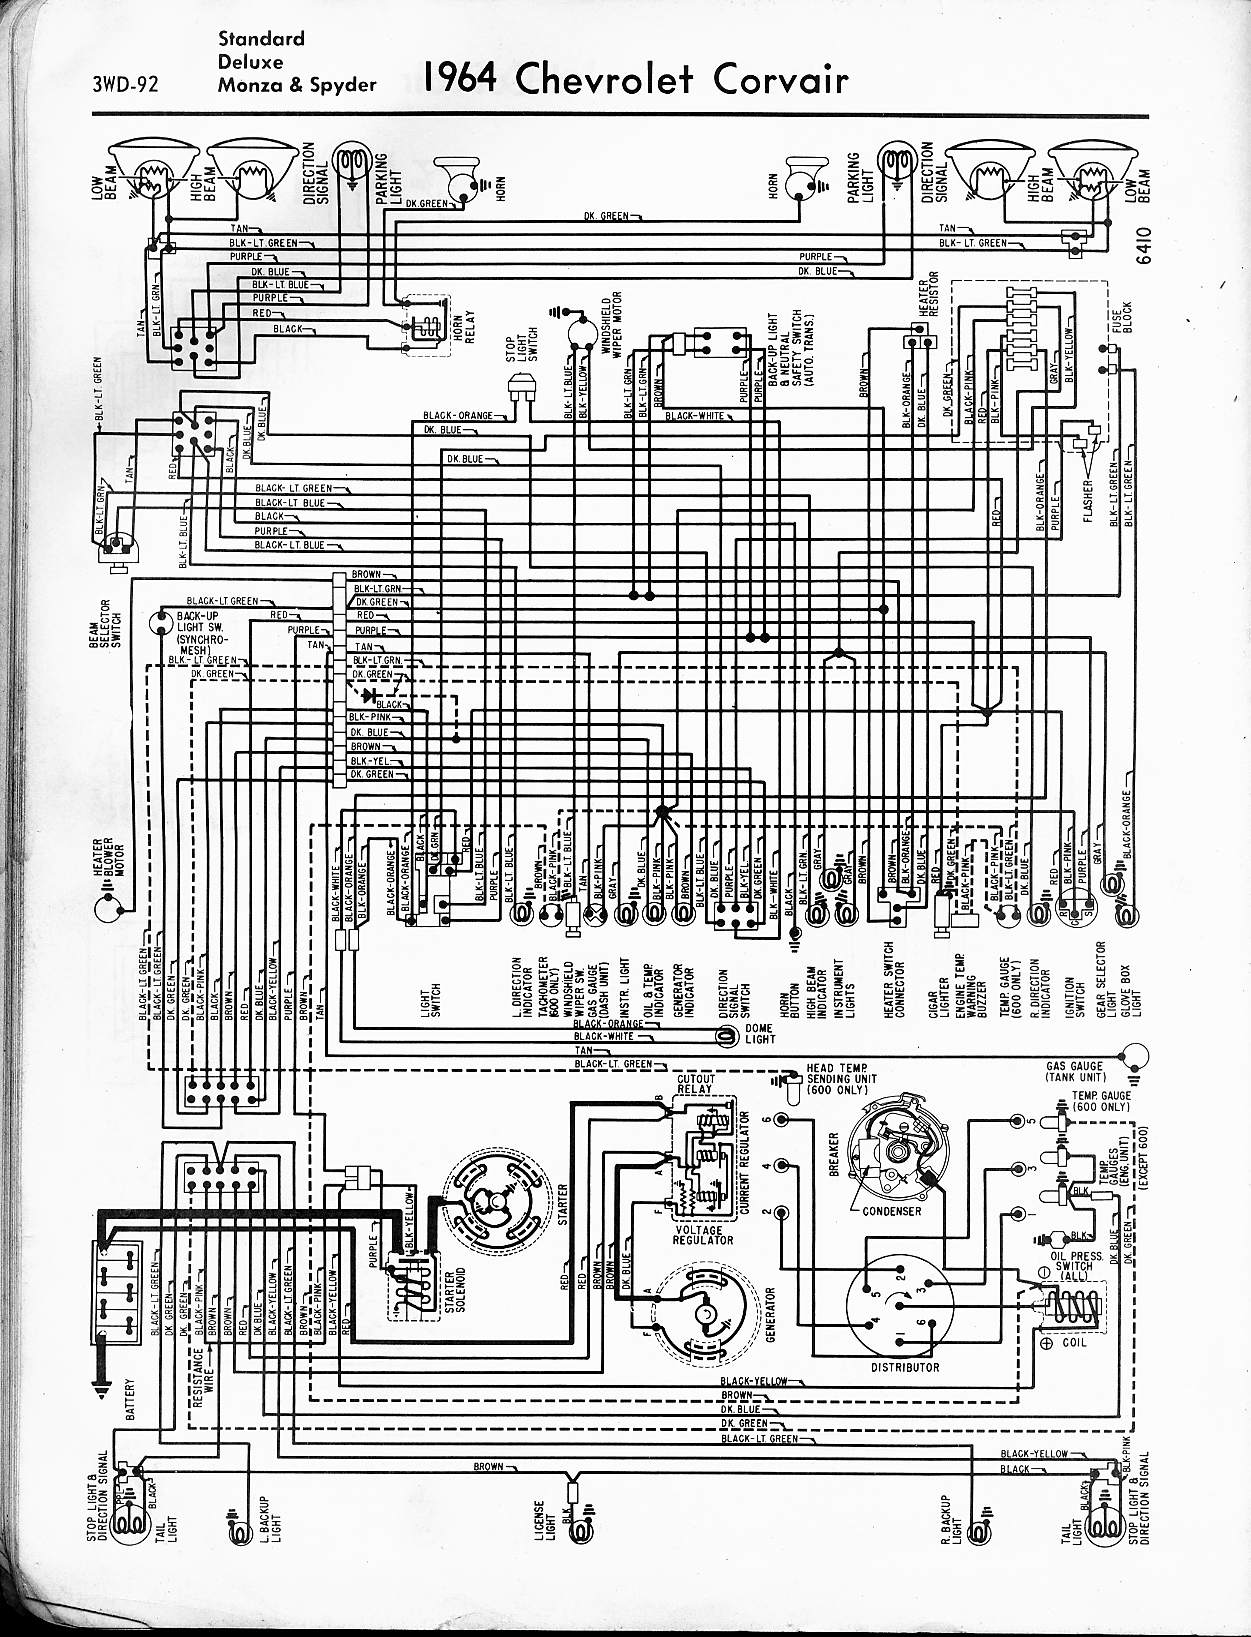 MWireChev64_3WD 092 57 65 chevy wiring diagrams chevrolet wiring diagrams free download at fashall.co